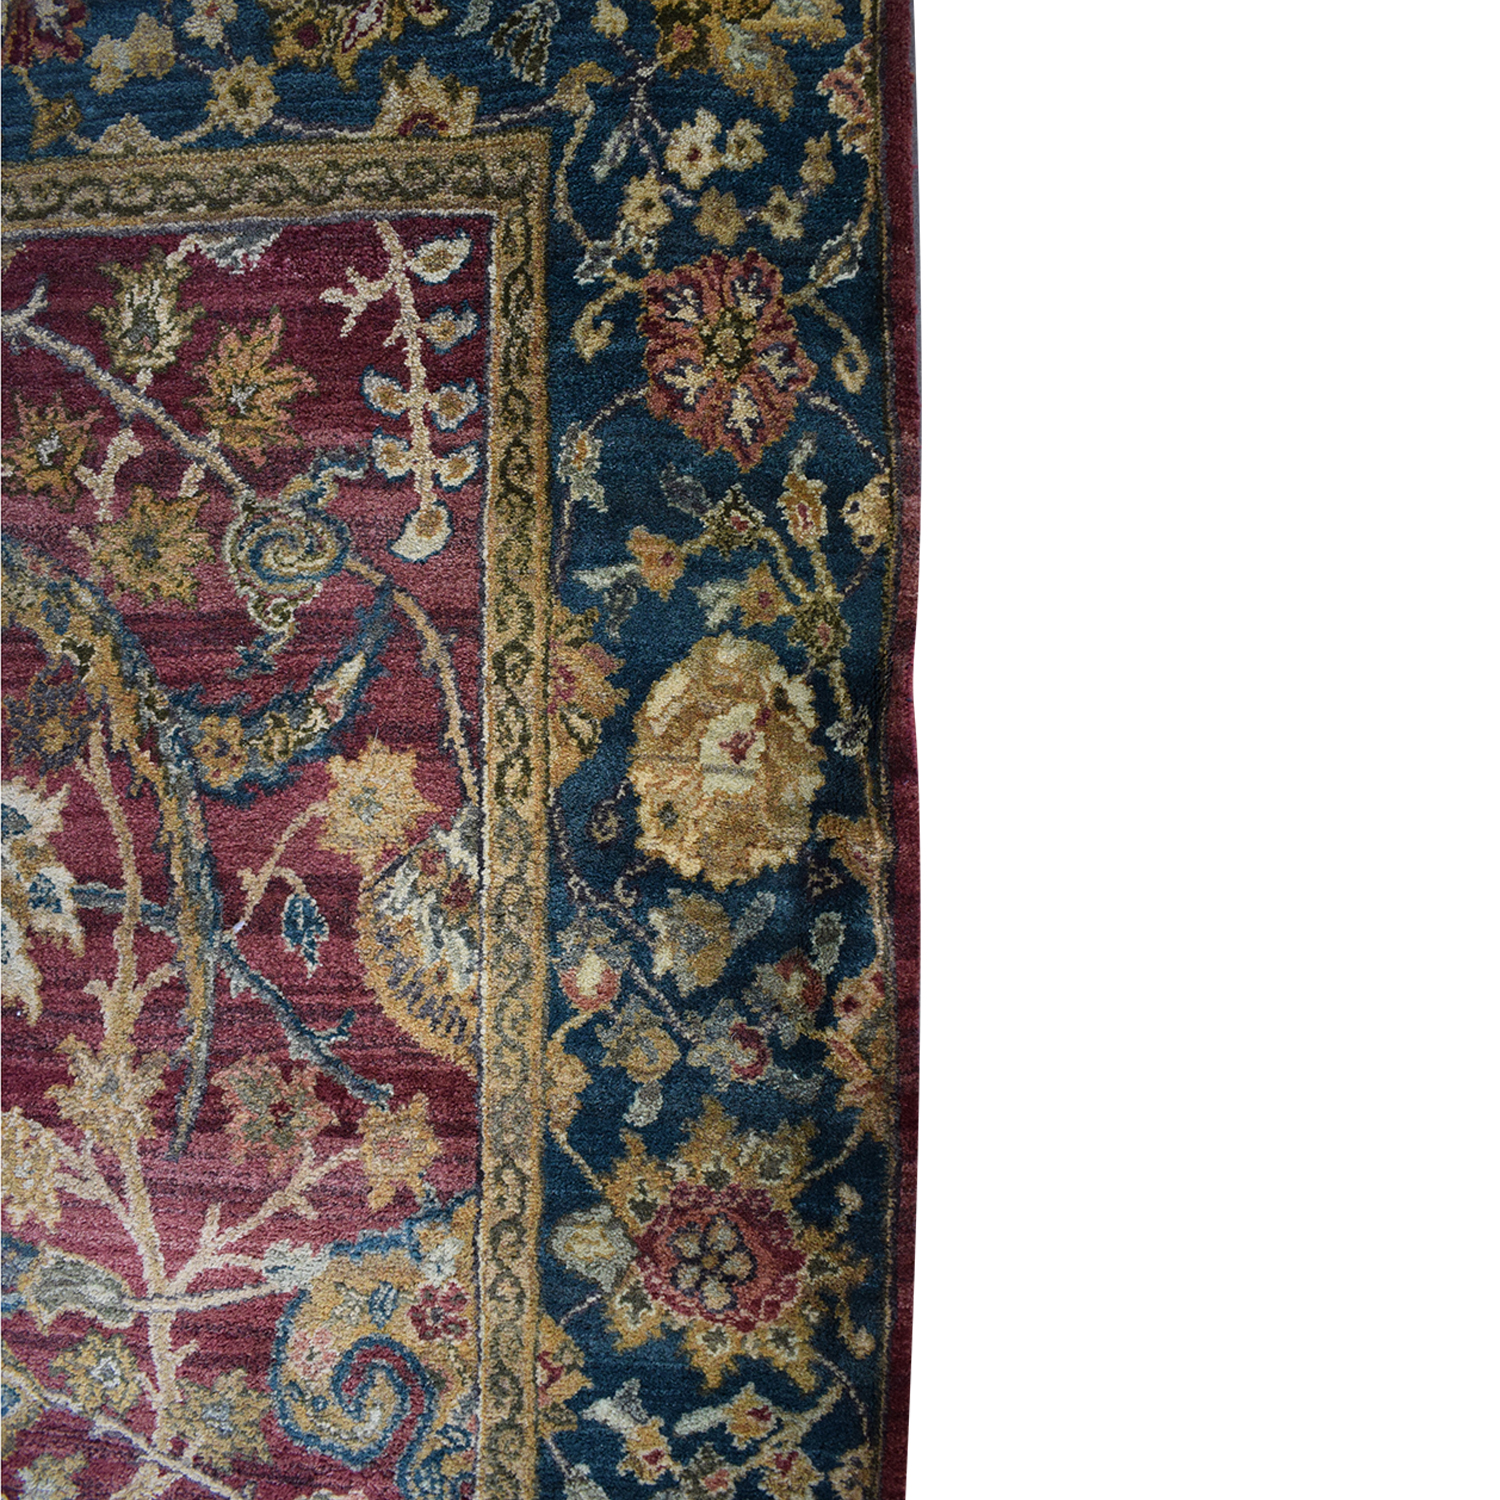 shop ABC Carpet & Home Rug ABC Carpet & Home Decor